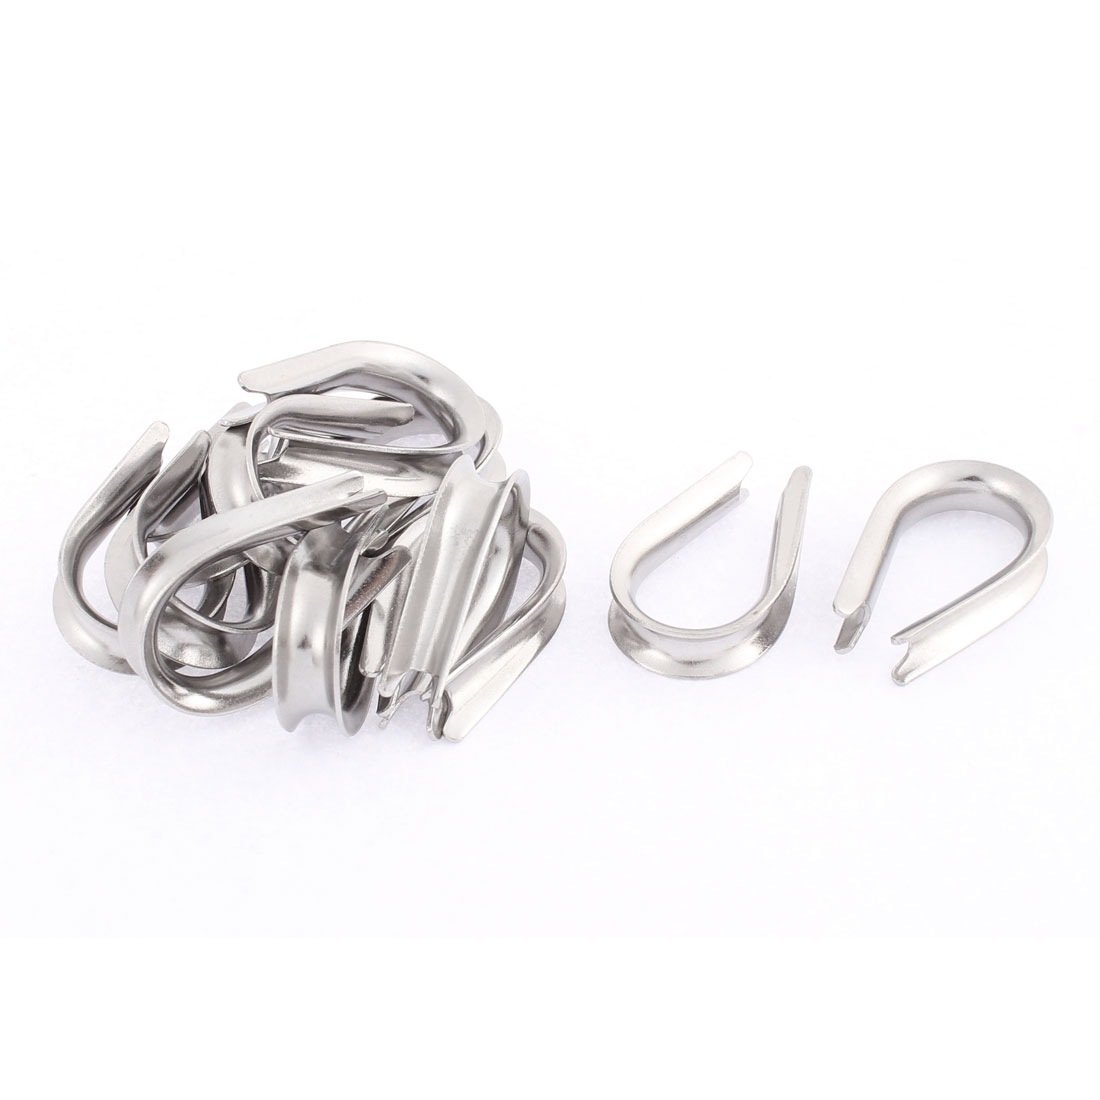 Stainless Steel 6mm Standard Wire Rope Cable Thimbles Silver Tone 12pcs